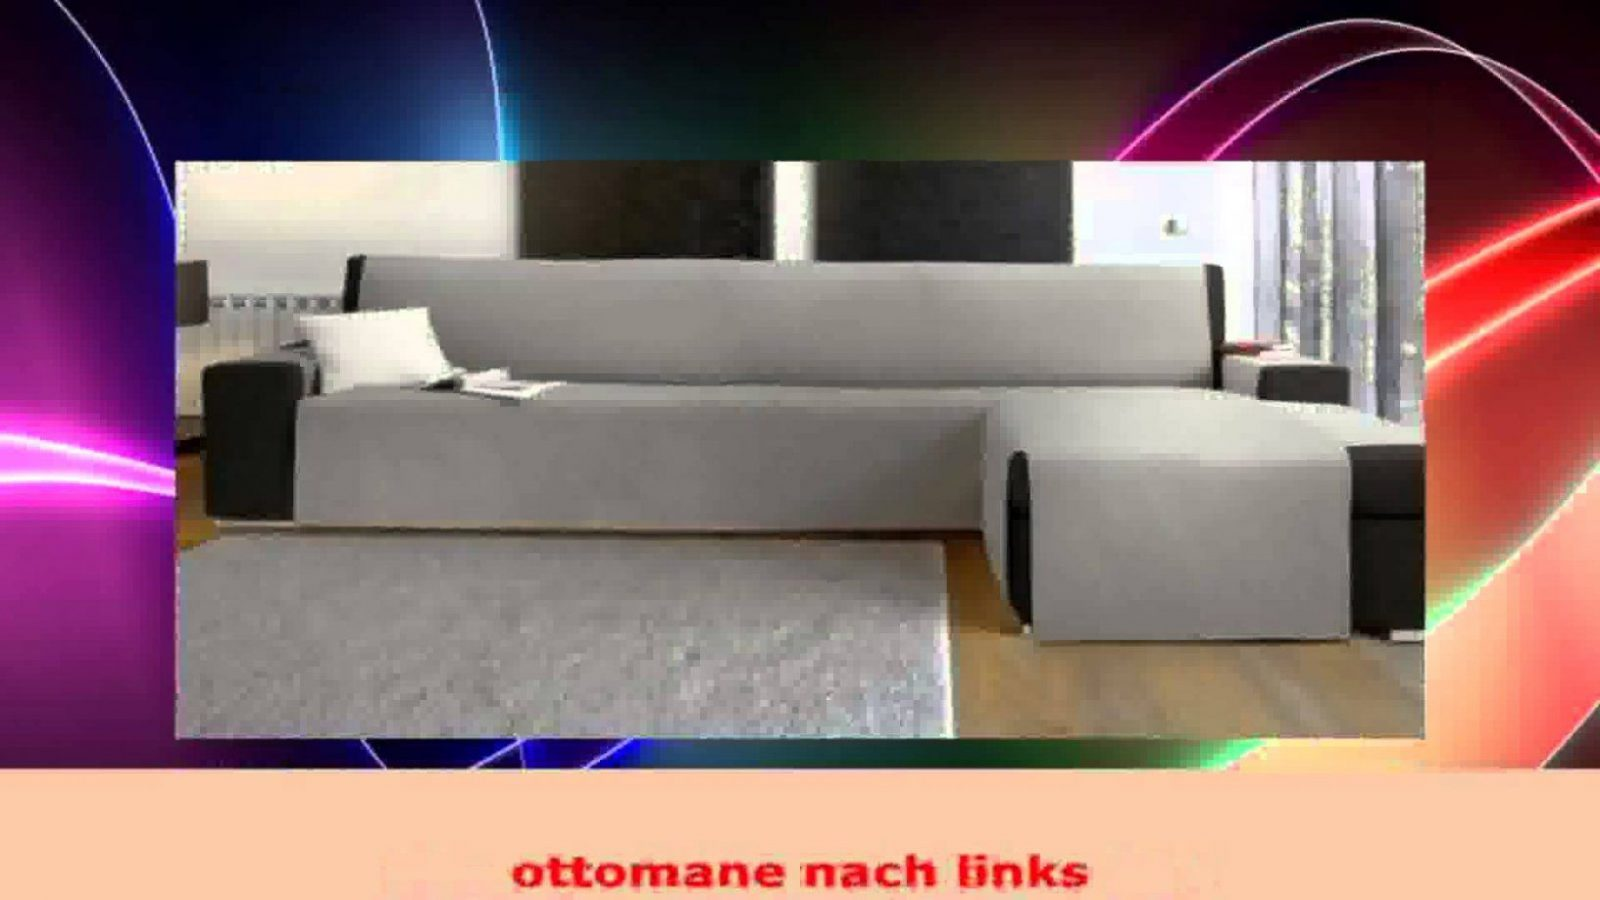 stretch husse ecksofa ottomane rechts my blog von stretchhusse f r ecksofa mit ottomane rechts. Black Bedroom Furniture Sets. Home Design Ideas